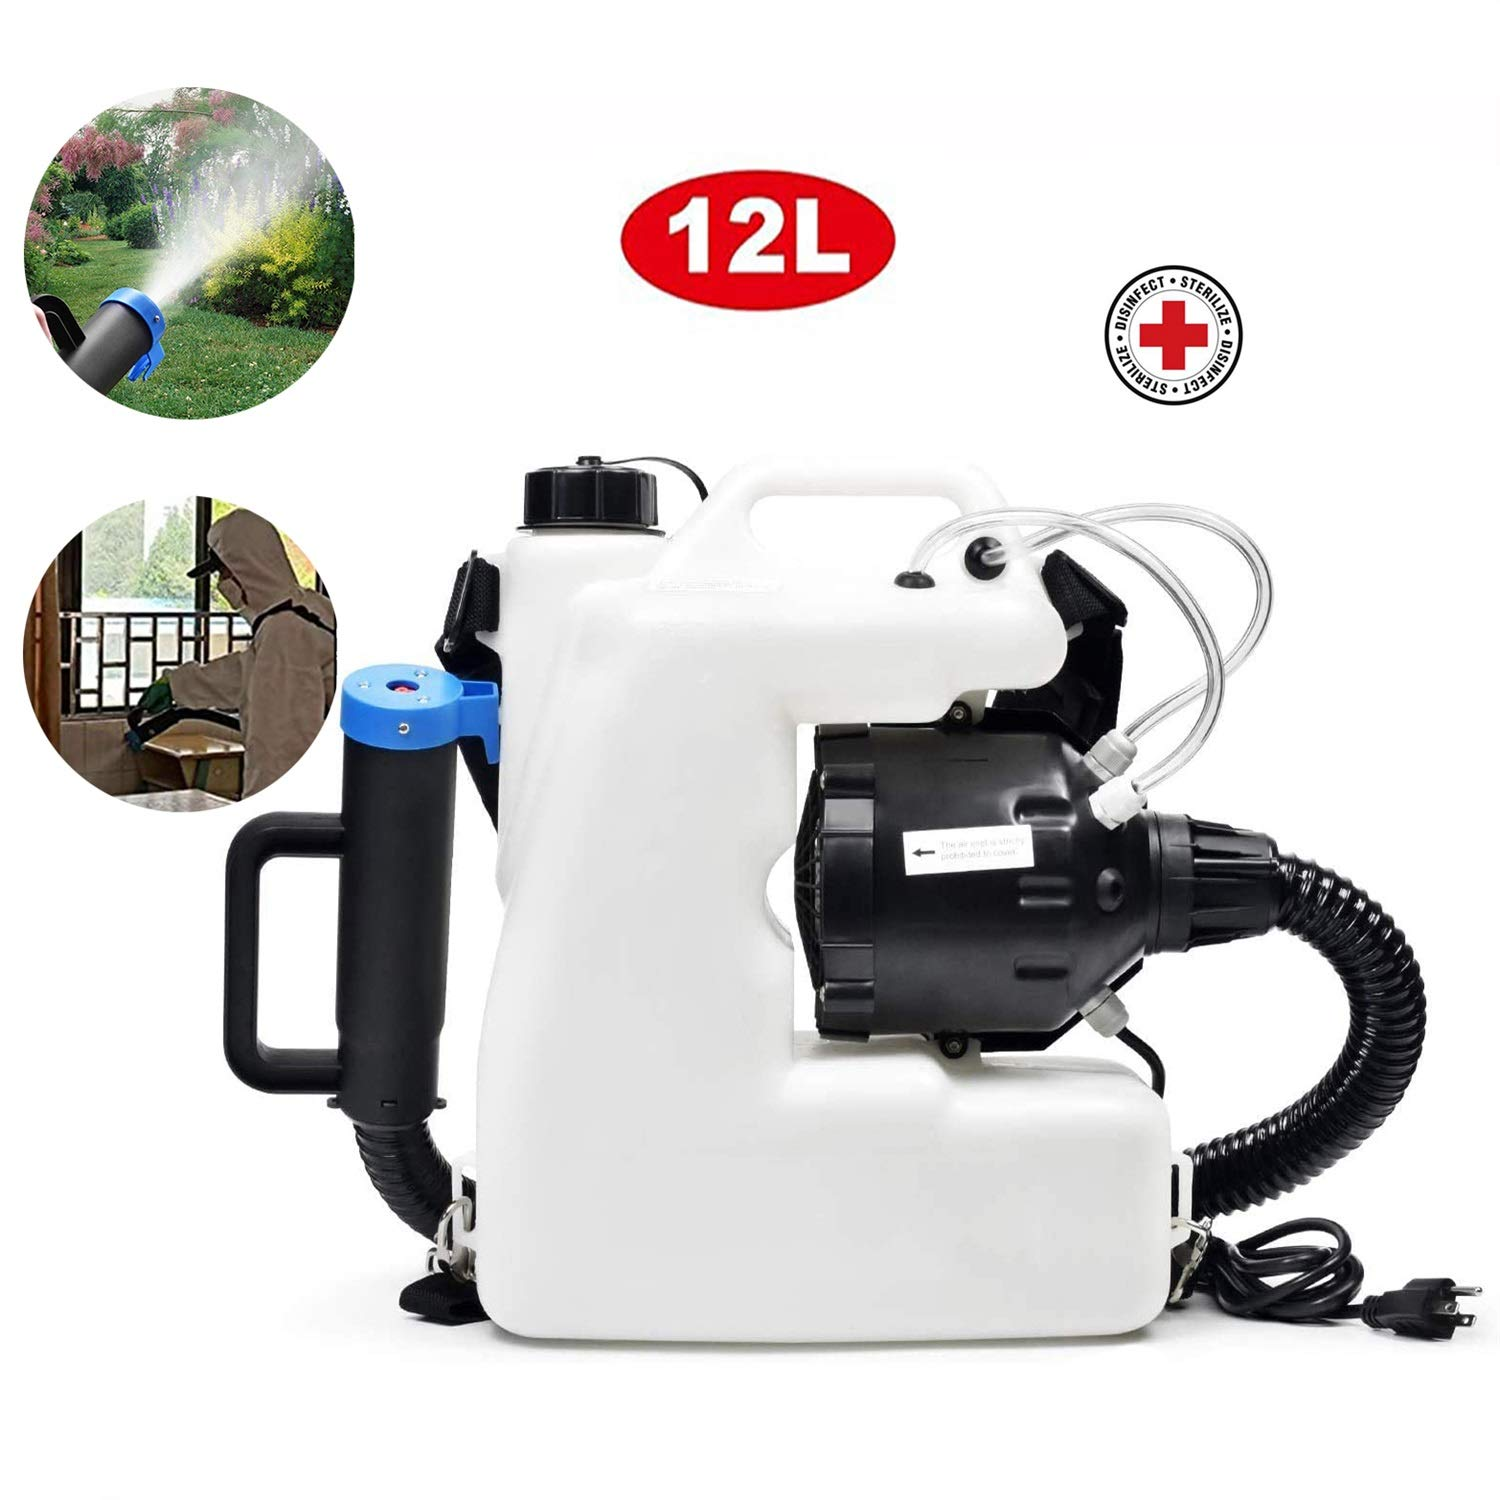 SGLMYD Electrico pulverizador de Agua Jardin, portátil Backpack sprayers 12L ULV nebulizador for sanitizar, Hospitales,Hogar,Subway,Cars: Amazon.es: Hogar